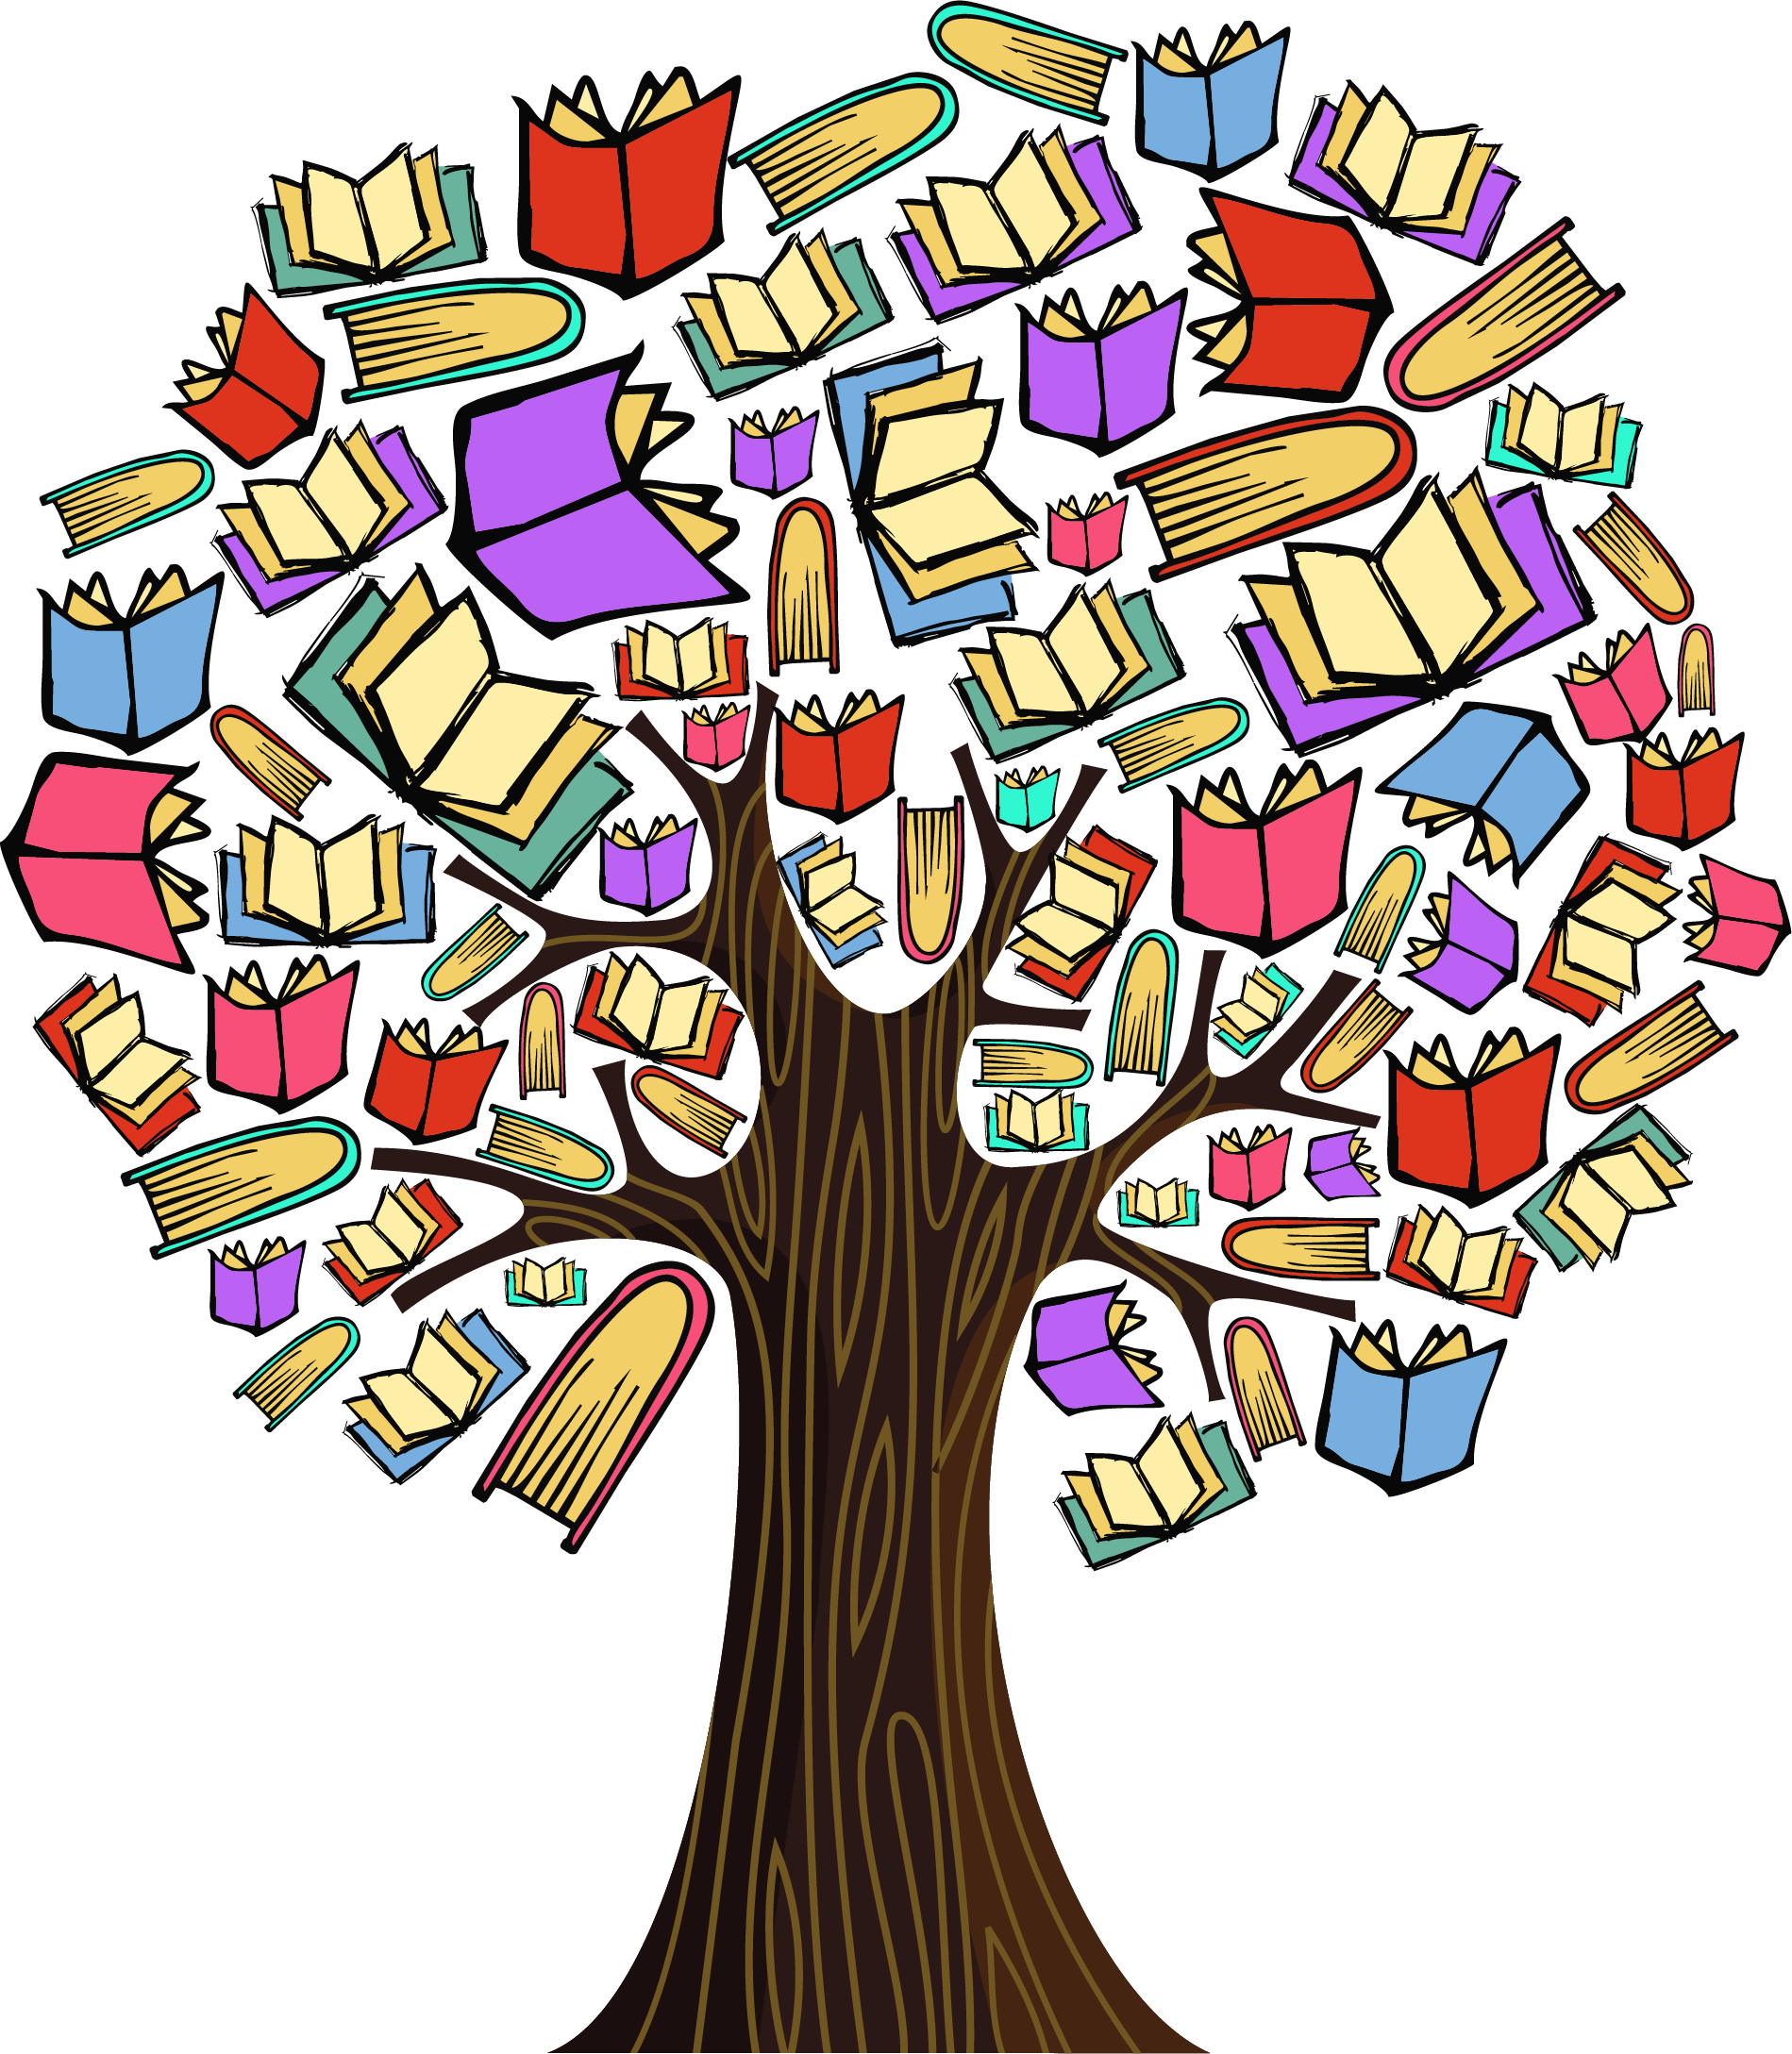 Transparent education clipart - Colourful Book Tree Milk Specialist Ⓒ - Book Tree